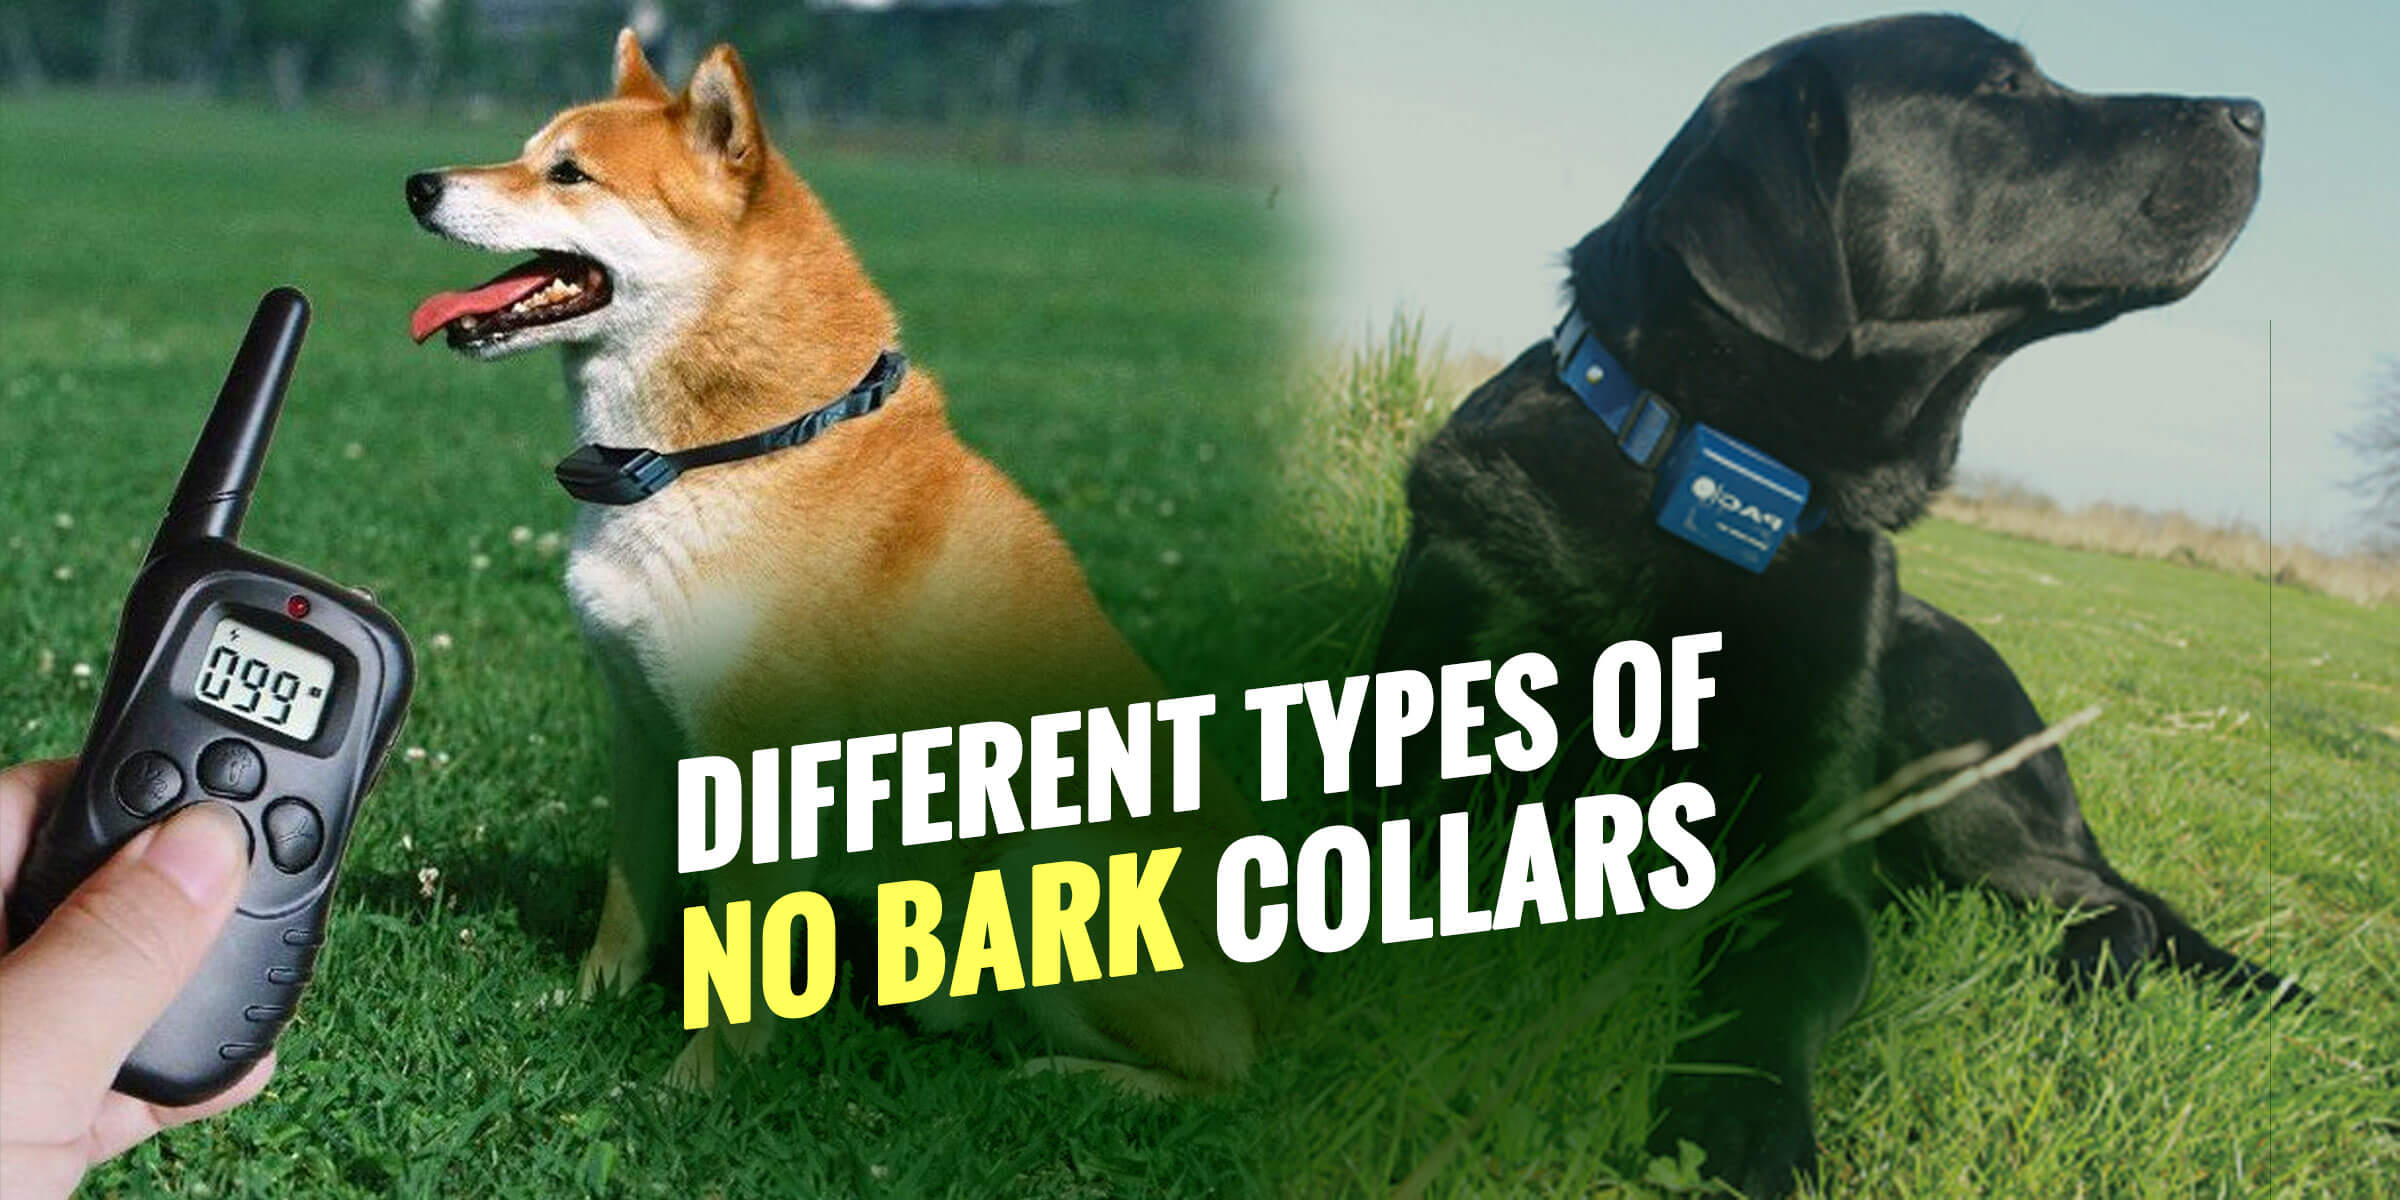 Top 6 Best No Bark Collars For Dogs That Are Humane